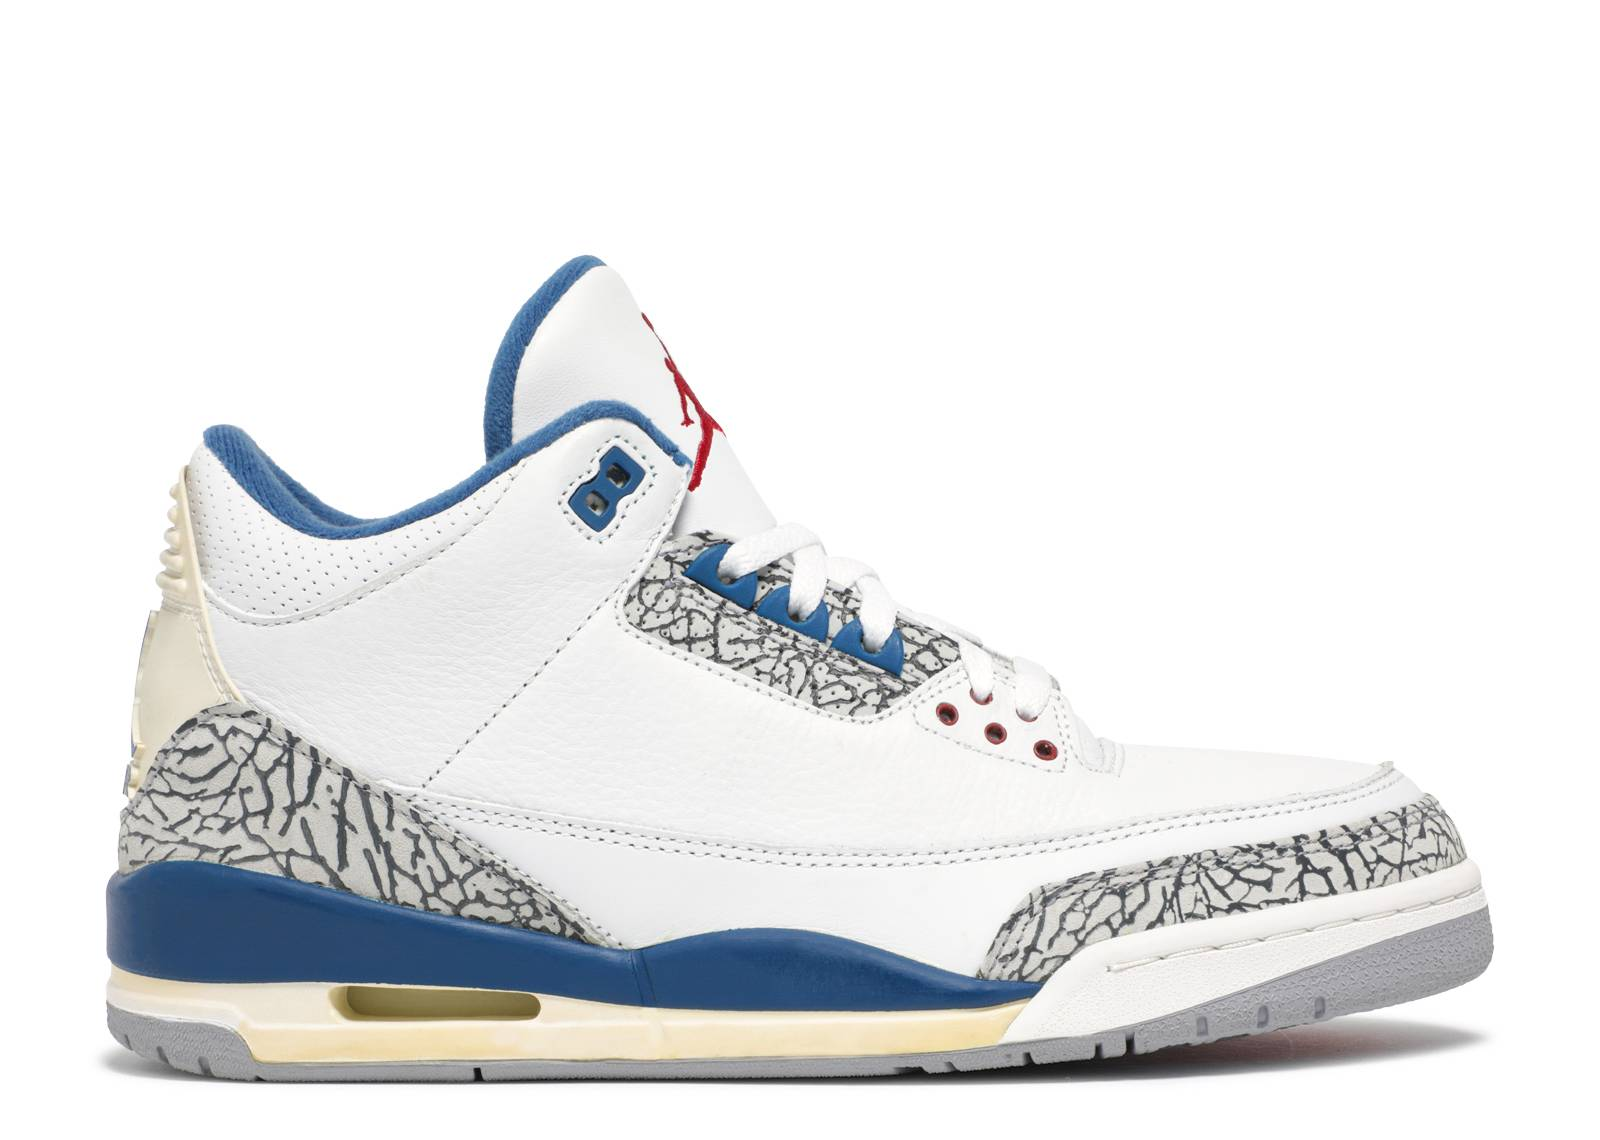 shorts de football Nike - Air Jordan 3 - Air Jordans | Flight Club